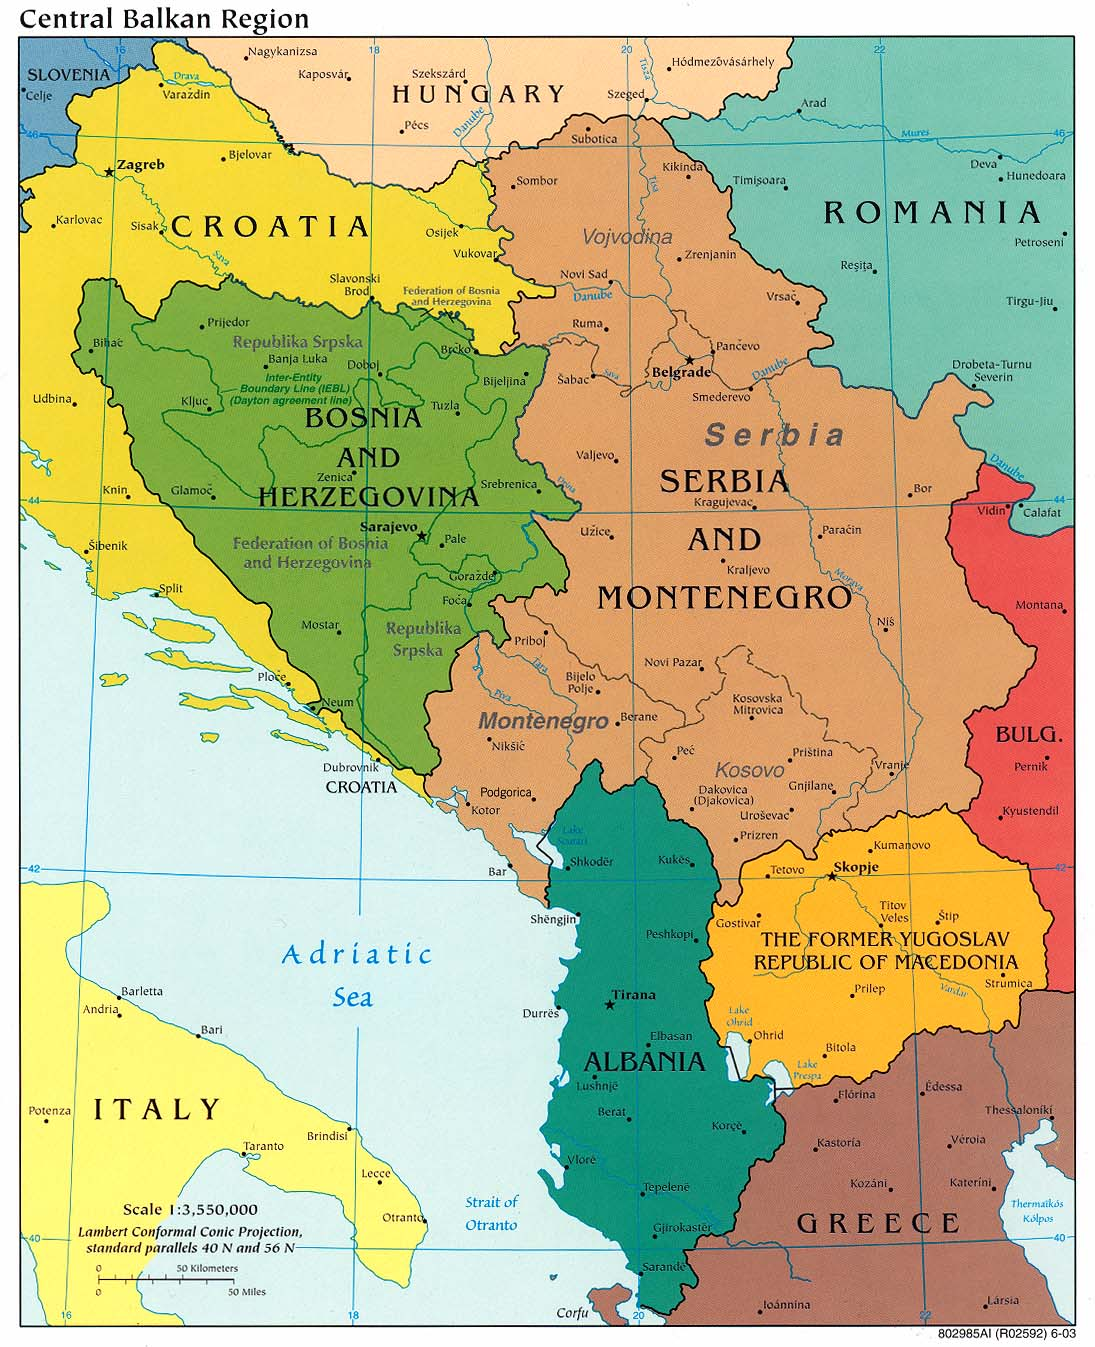 Europe Maps - Perry-Castañeda Map Collection - UT Liry Online on beautiful women of europe, world atlas of europe, black and white world map europe, world map europe 1500, world map japan, world globe map europe, geography of europe, country of europe, shapes of europe, world war 2 allies and axis countries map, world us map, world map europe and america, world map eastern europe, canada of europe, world map with countries, world map western asia, peninsulas of europe, rivers of europe, asia of europe, germany of europe,